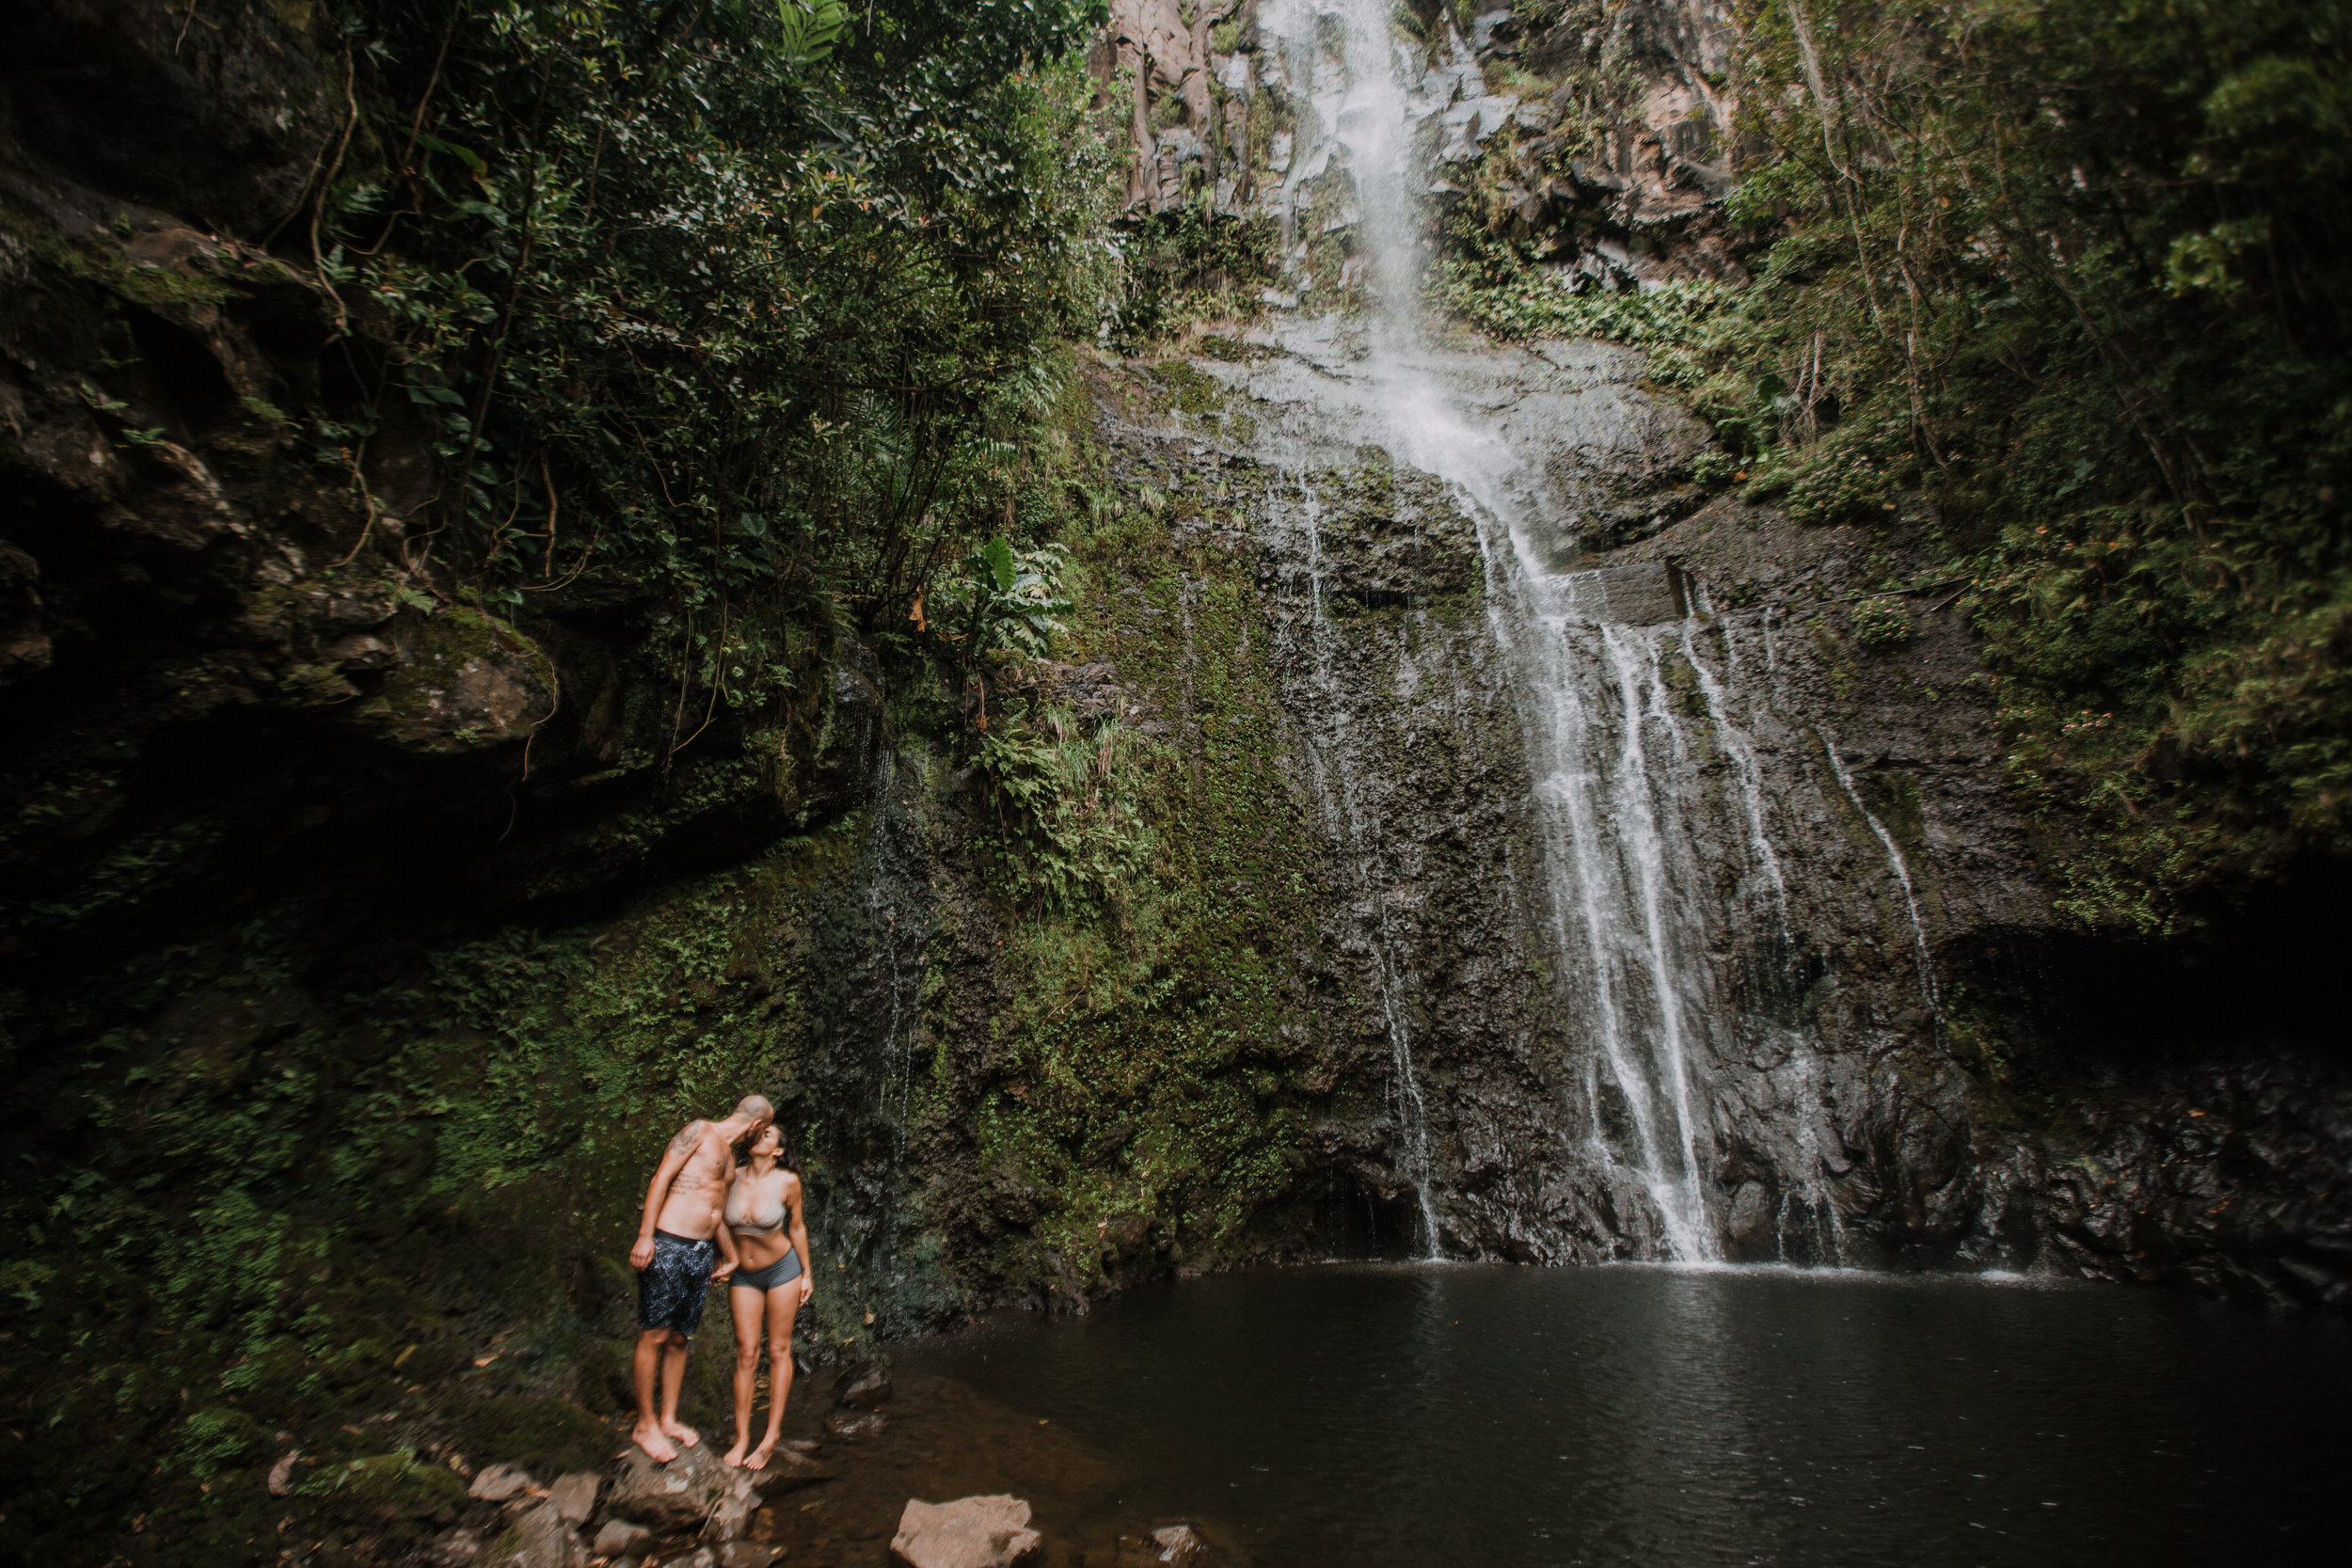 hana maui waterfall, hawaii waterfall, road to hana, maui waterfall, hawaii wedding photographer, hawaii elopement photographer, maui wedding, maui engagements, maui elopement